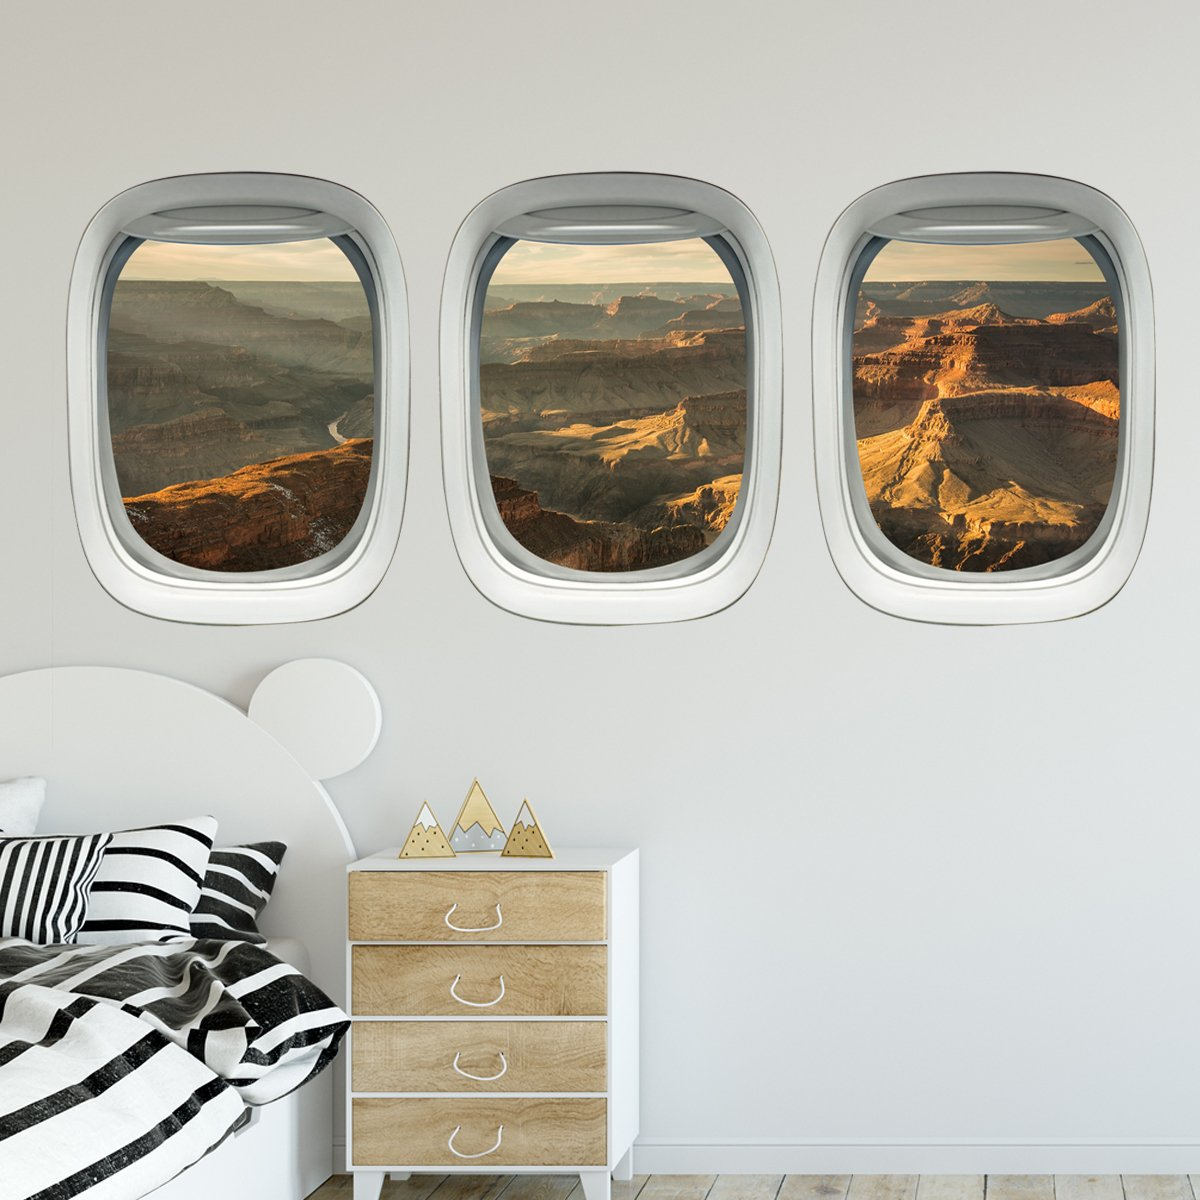 VWAQ Pack of 3 Grand Canyon Wall Sticker For Boys Room Aviation Decals - PPW9 - VWAQ Vinyl Wall Art Quotes and Prints